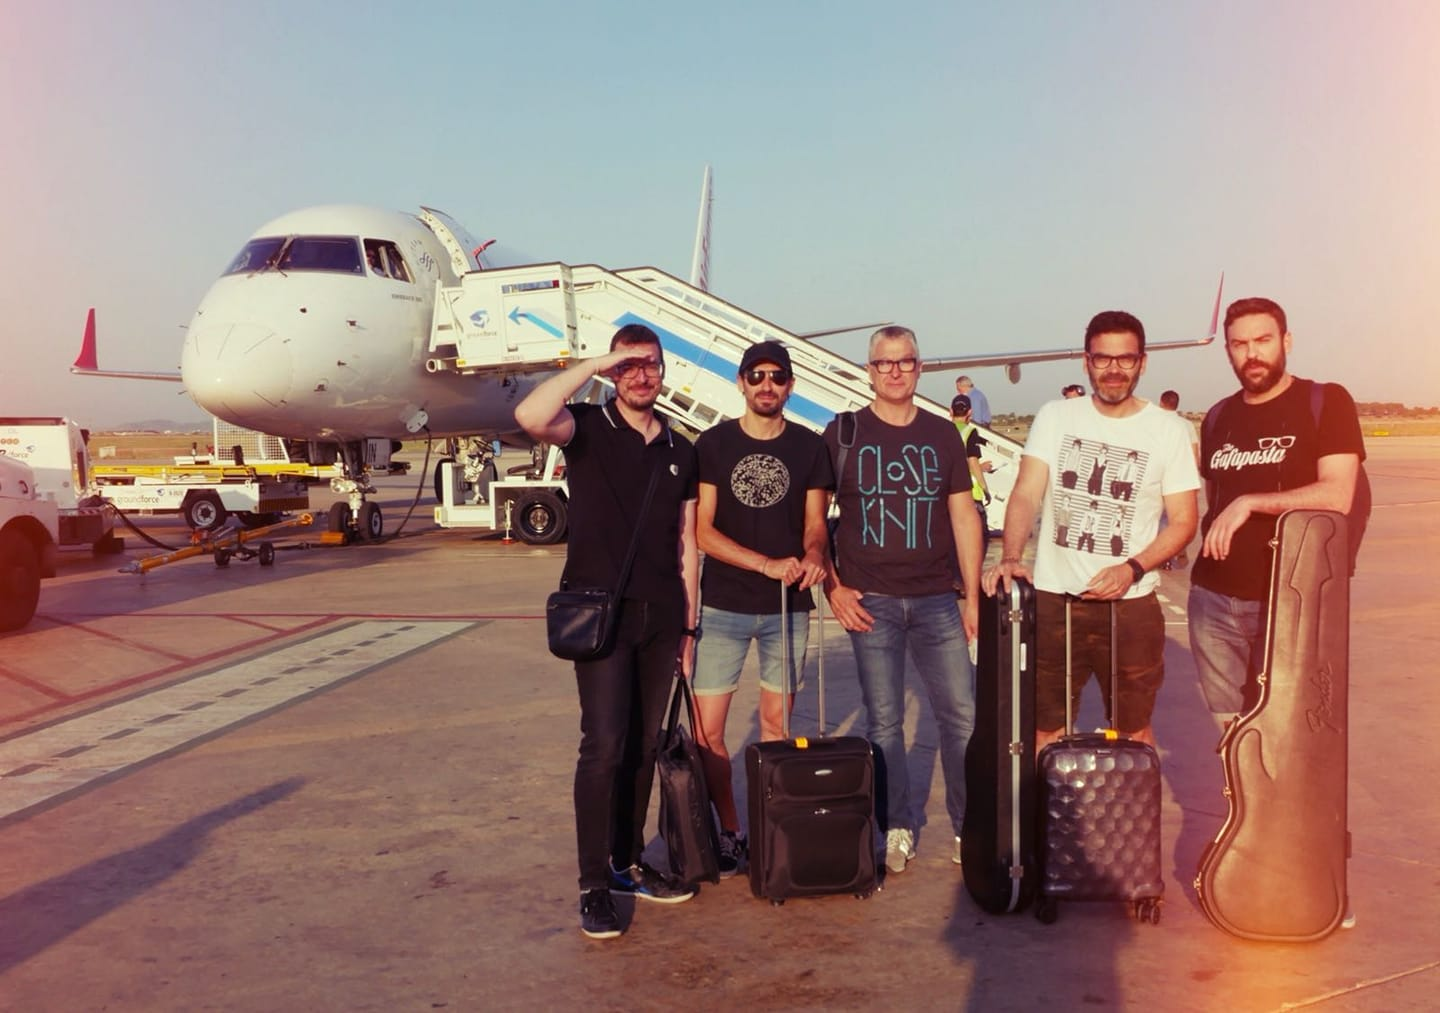 The Gafapasta rumbo a Mallorca con Soundline